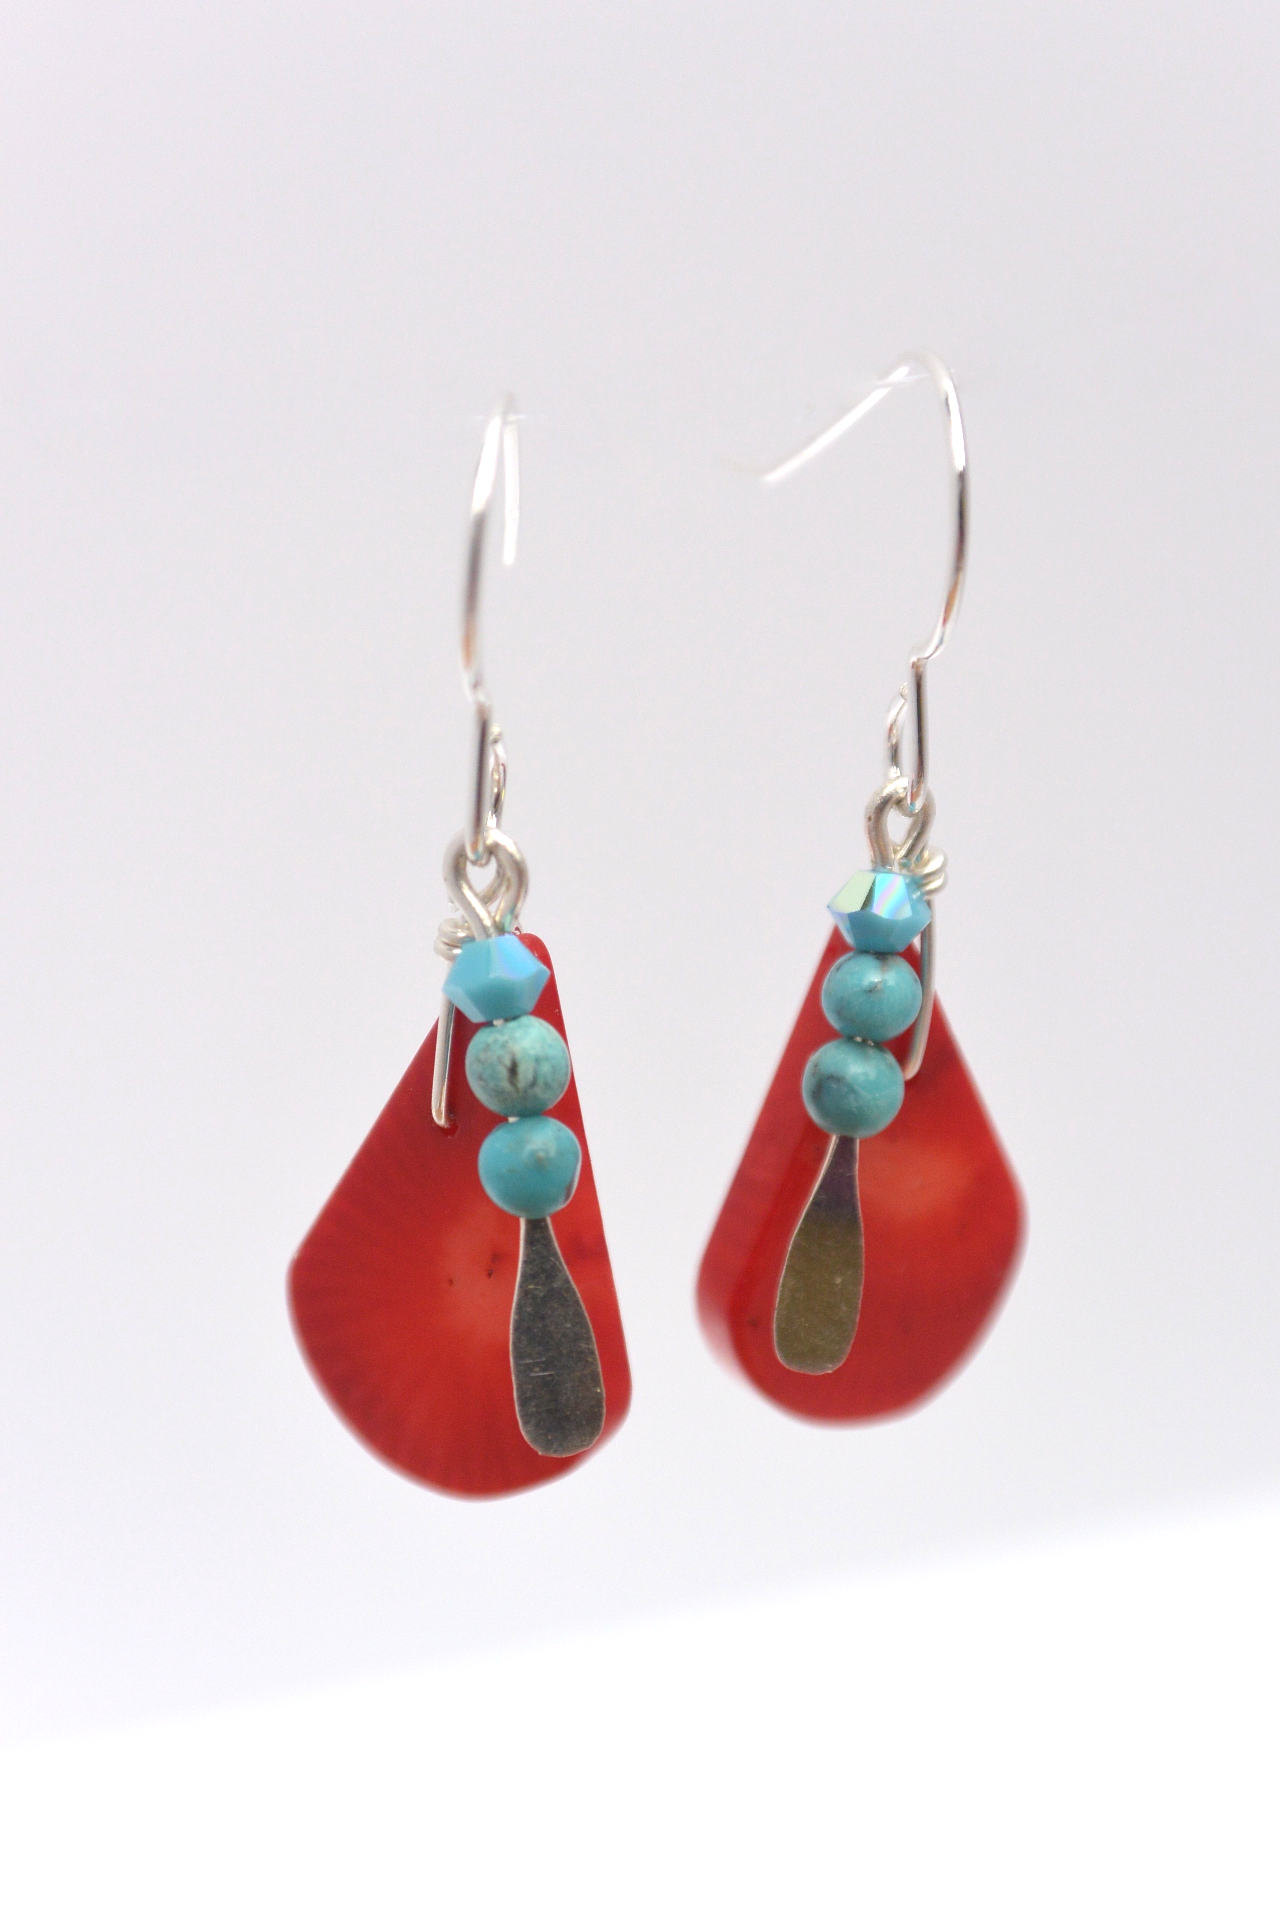 Coral Drops and turquoise #G25